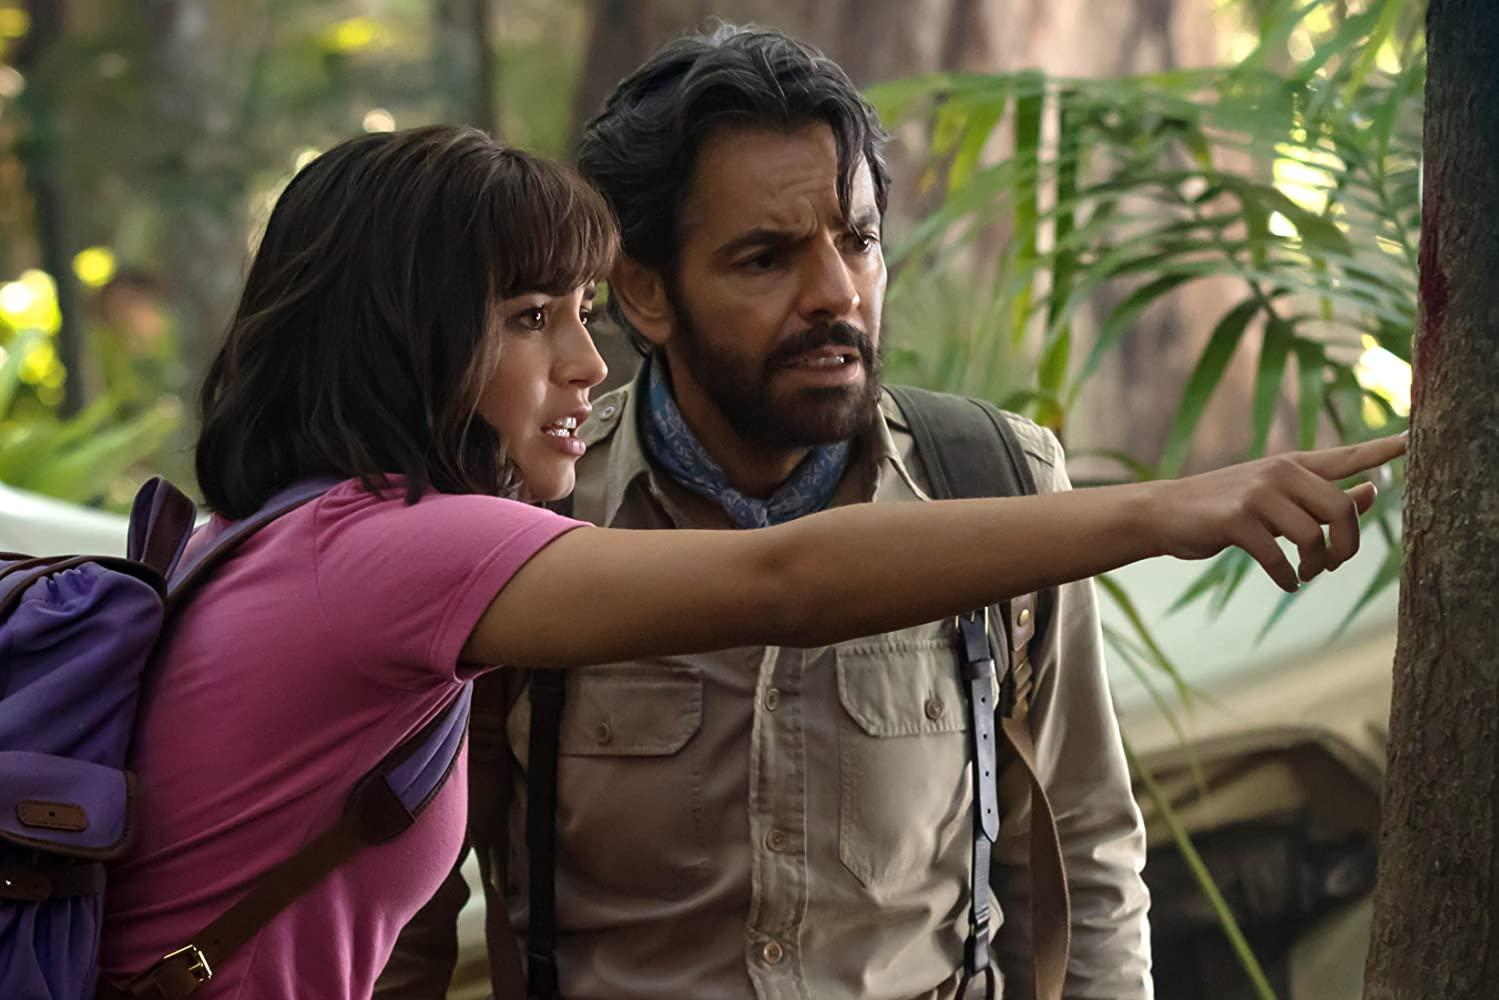 مشاهدة فيلم Dora and the Lost City of Gold (2019) مترجم HD اون لاين